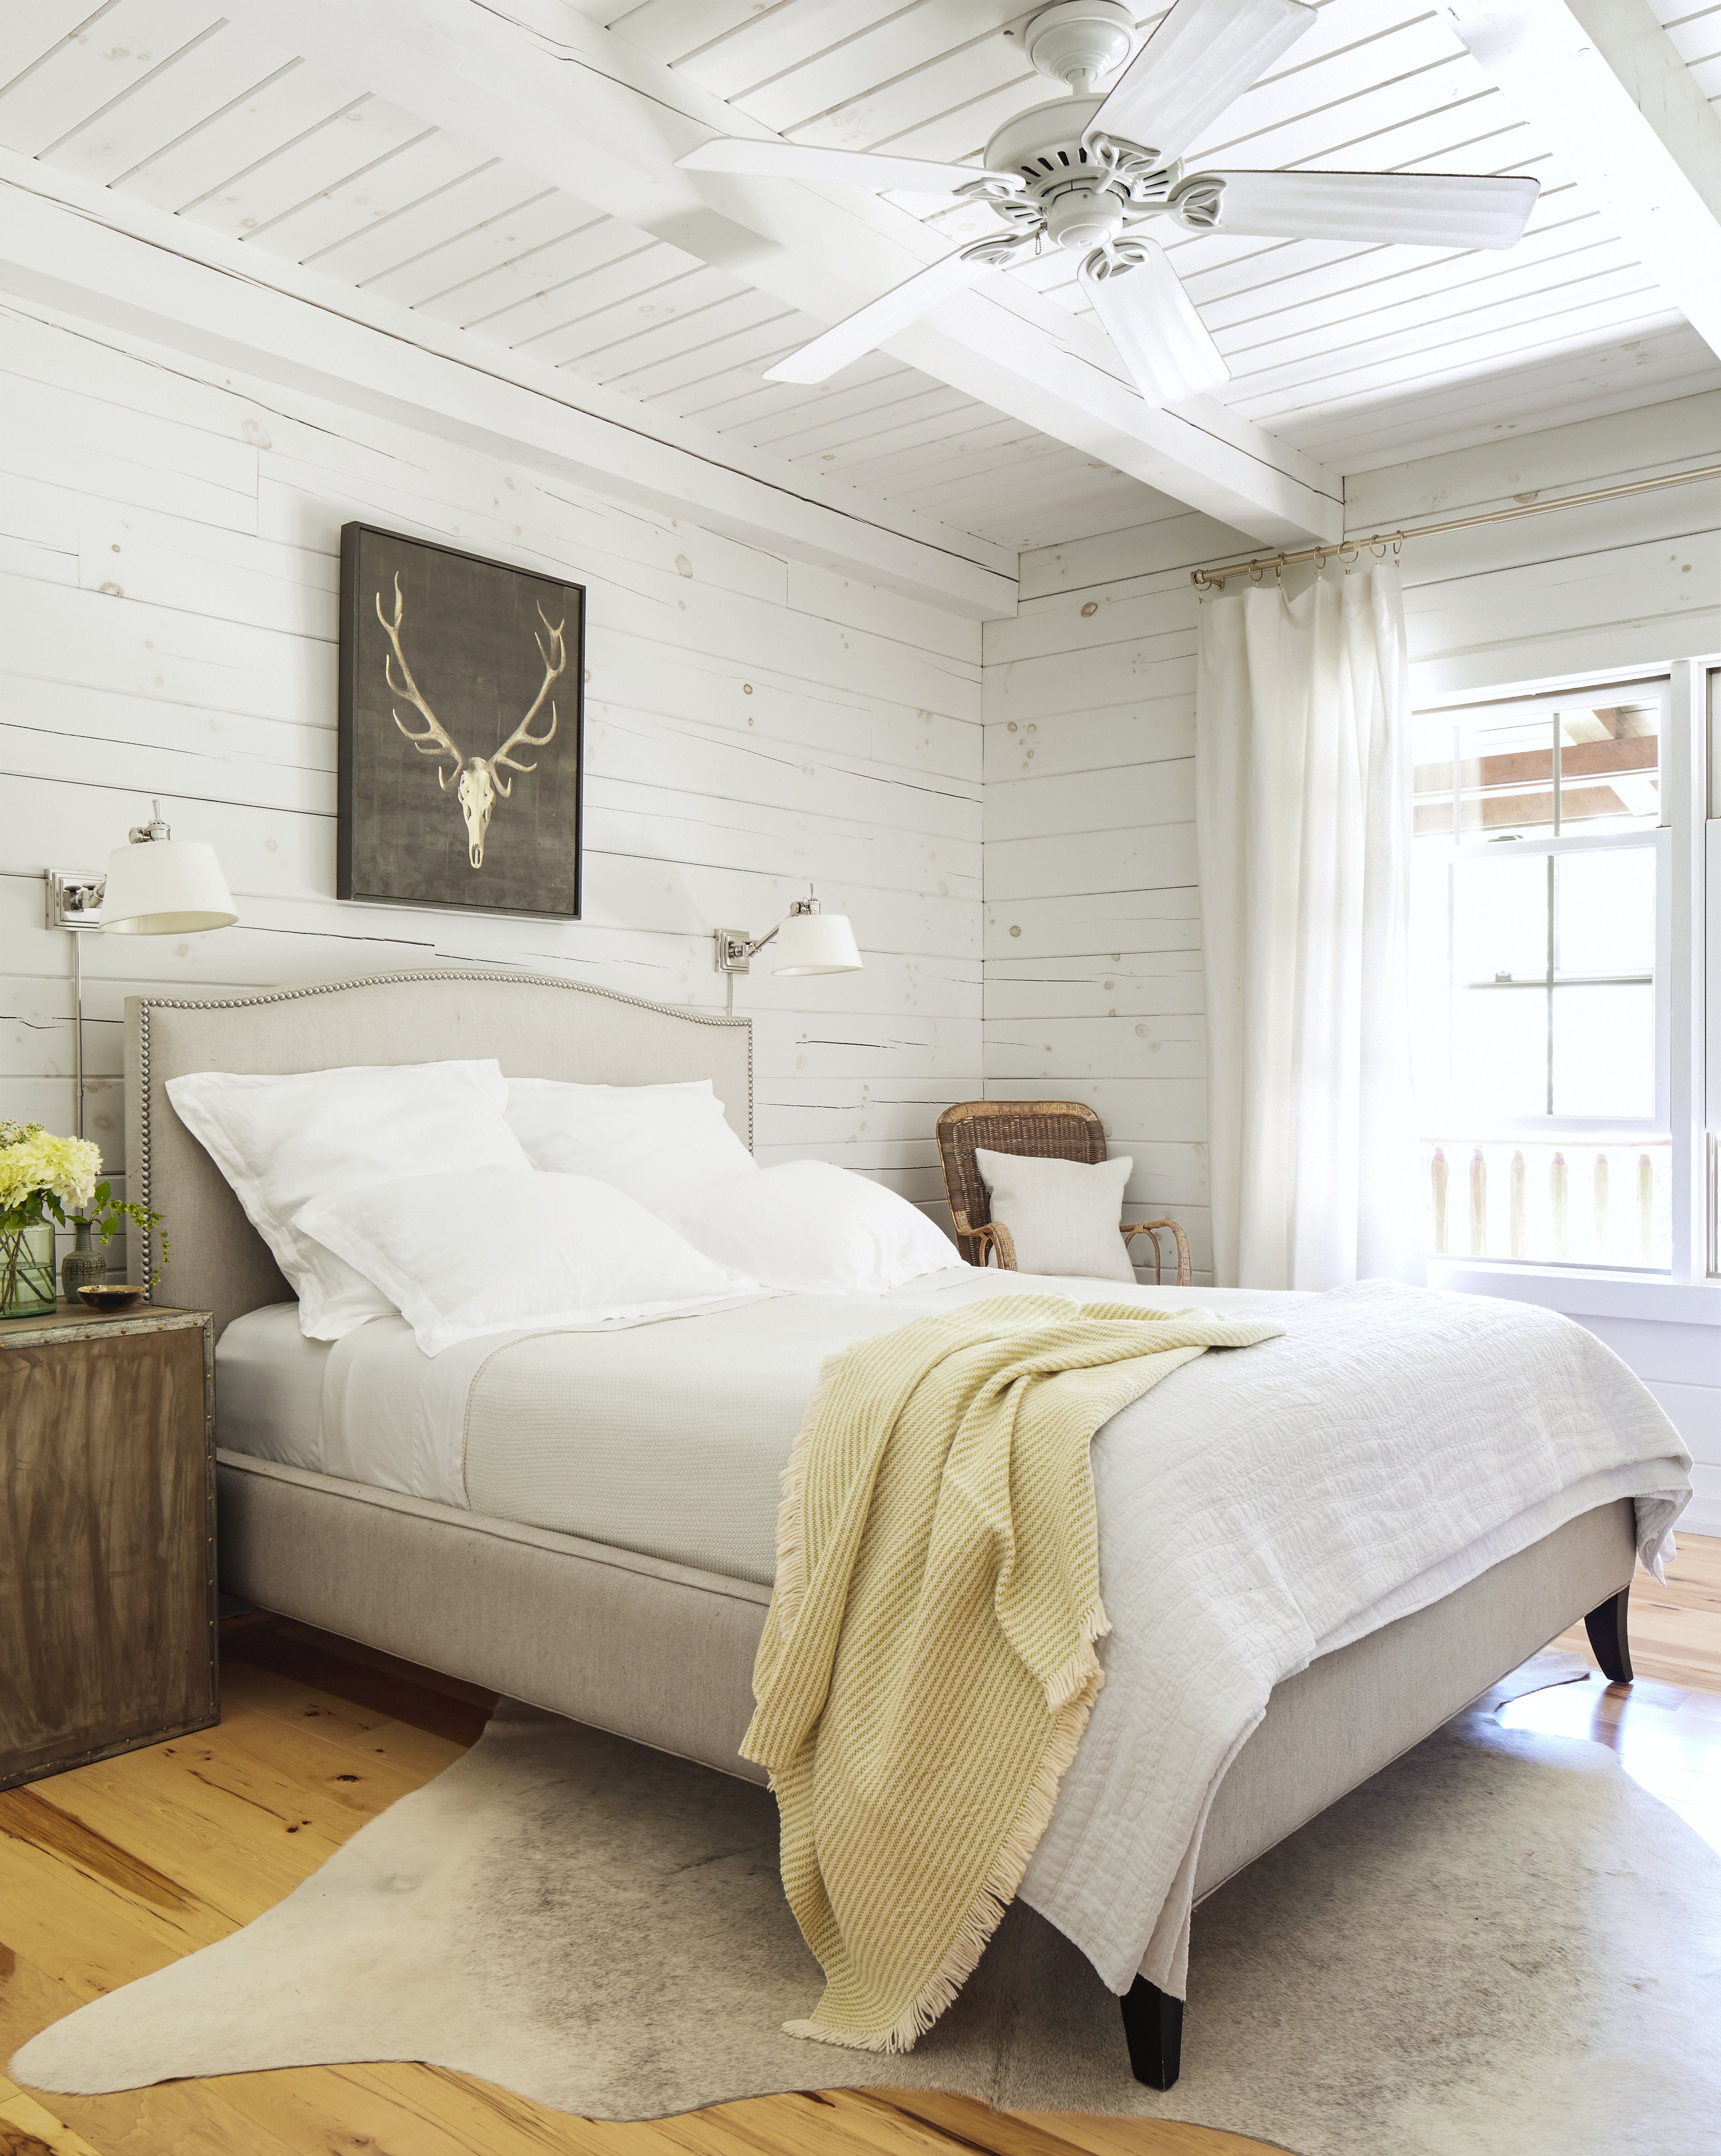 55 Bedroom Decorating Ideas How To Design A Master Bedroom